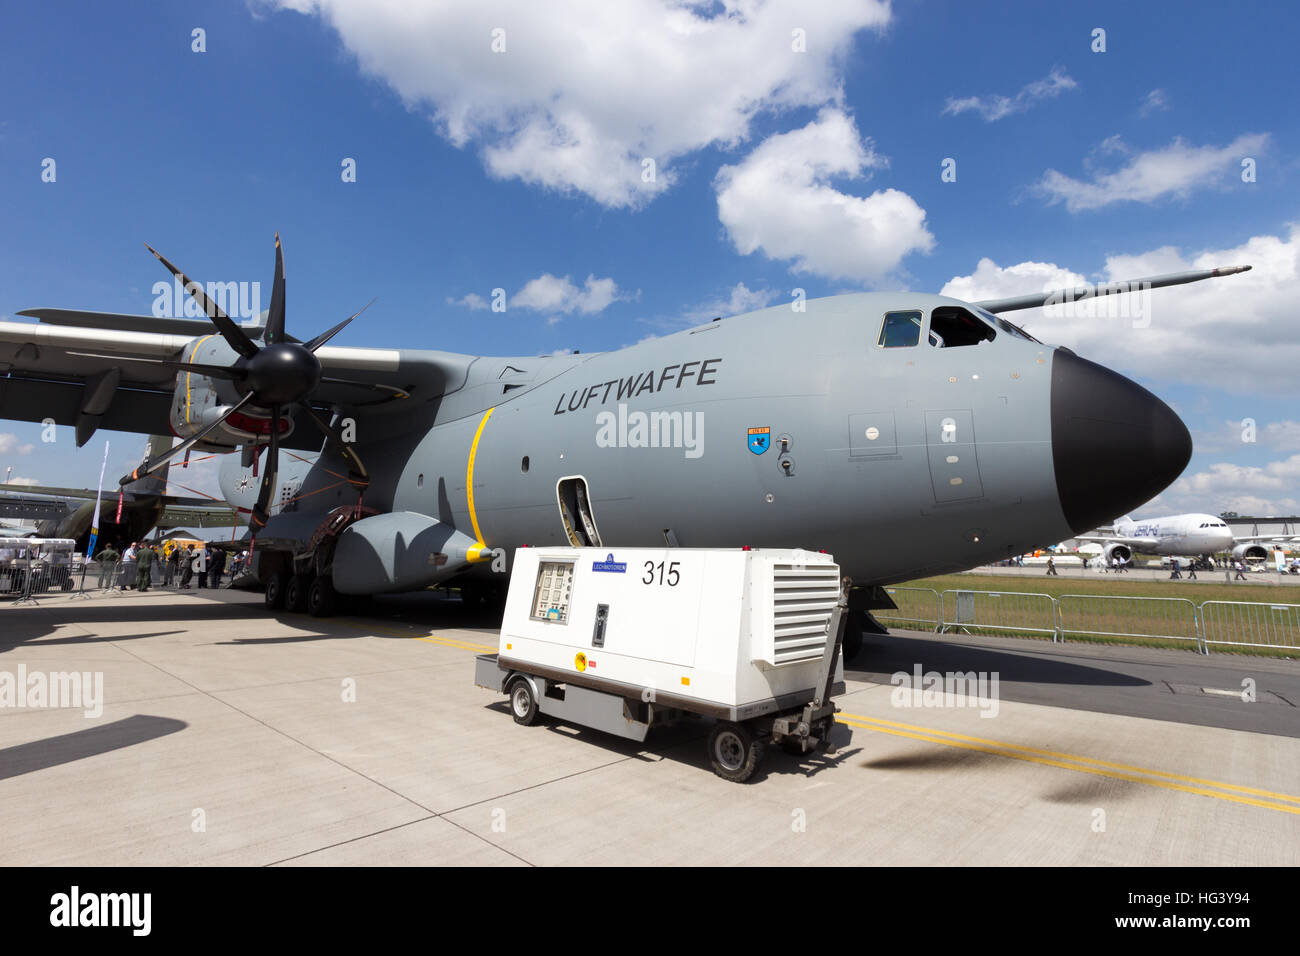 German air force Airbus A400M transport plane on display at the ILA airshow at Berlin Schoneveld airport. - Stock Image